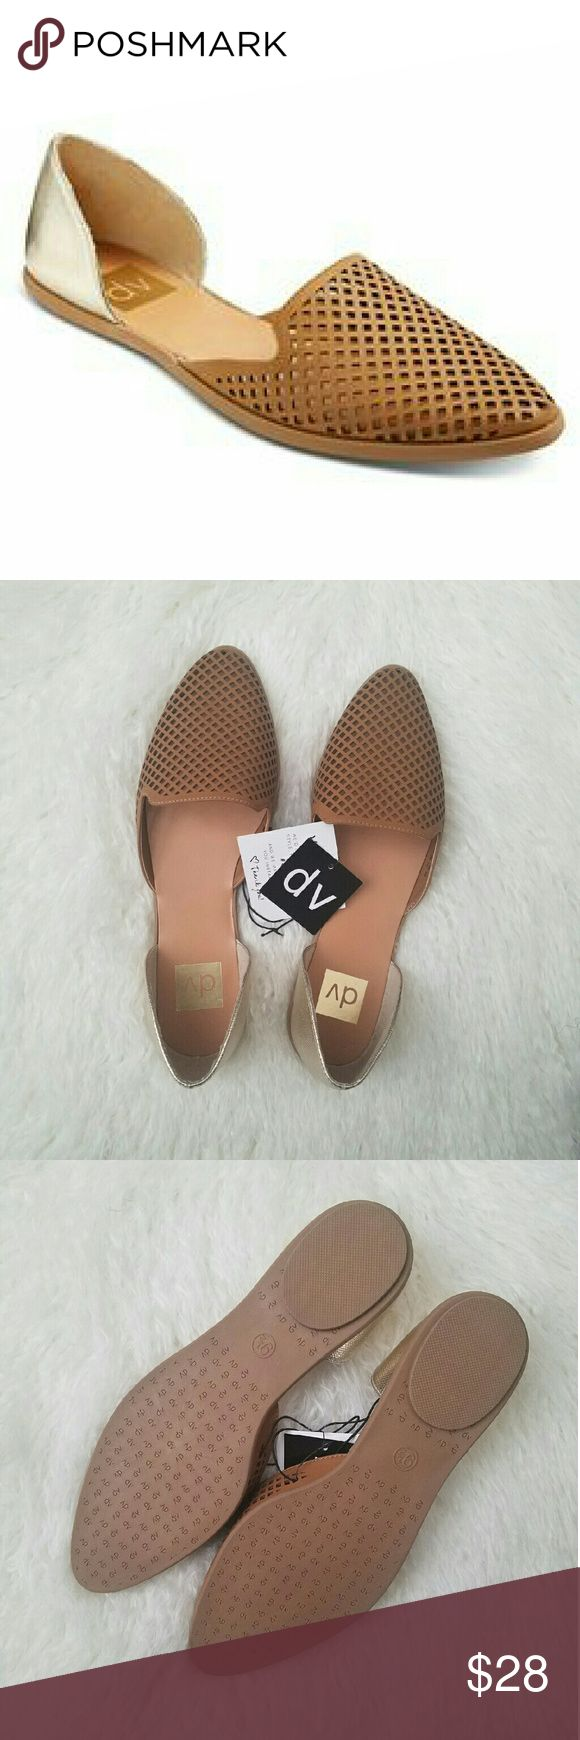 ***ONE DAY ONLY! $ FIRM***Tan & Gold Flats Two piece flats. Manmade materials. DV by Dolce Vita Shoes Flats & Loafers